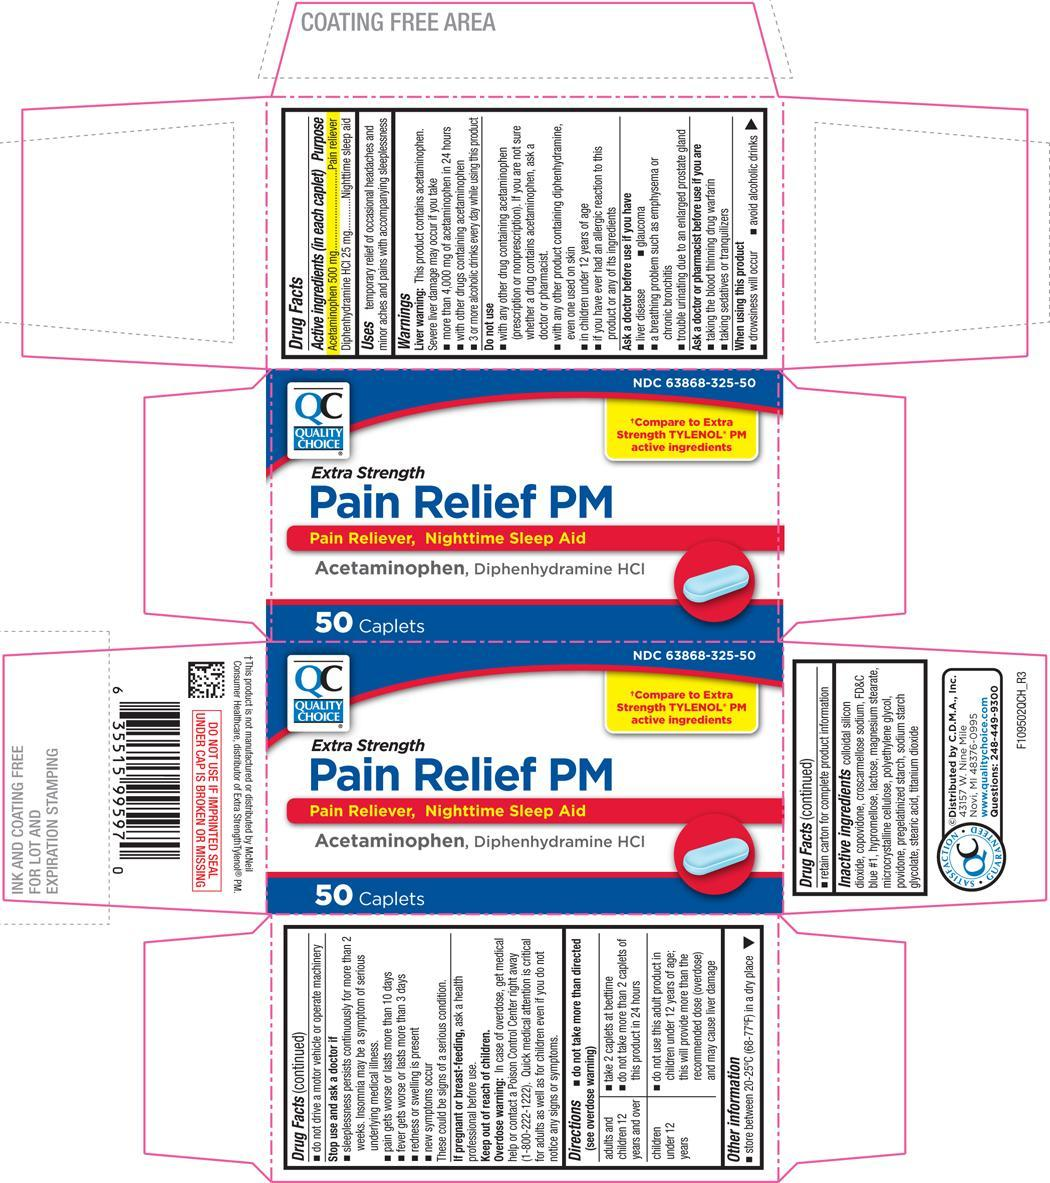 Pain Relief Pm Extra Strength (Acetaminophen And Diphenhydramine Hydrochloride) Tablet, Coated [Chain Drug Marketing Association]